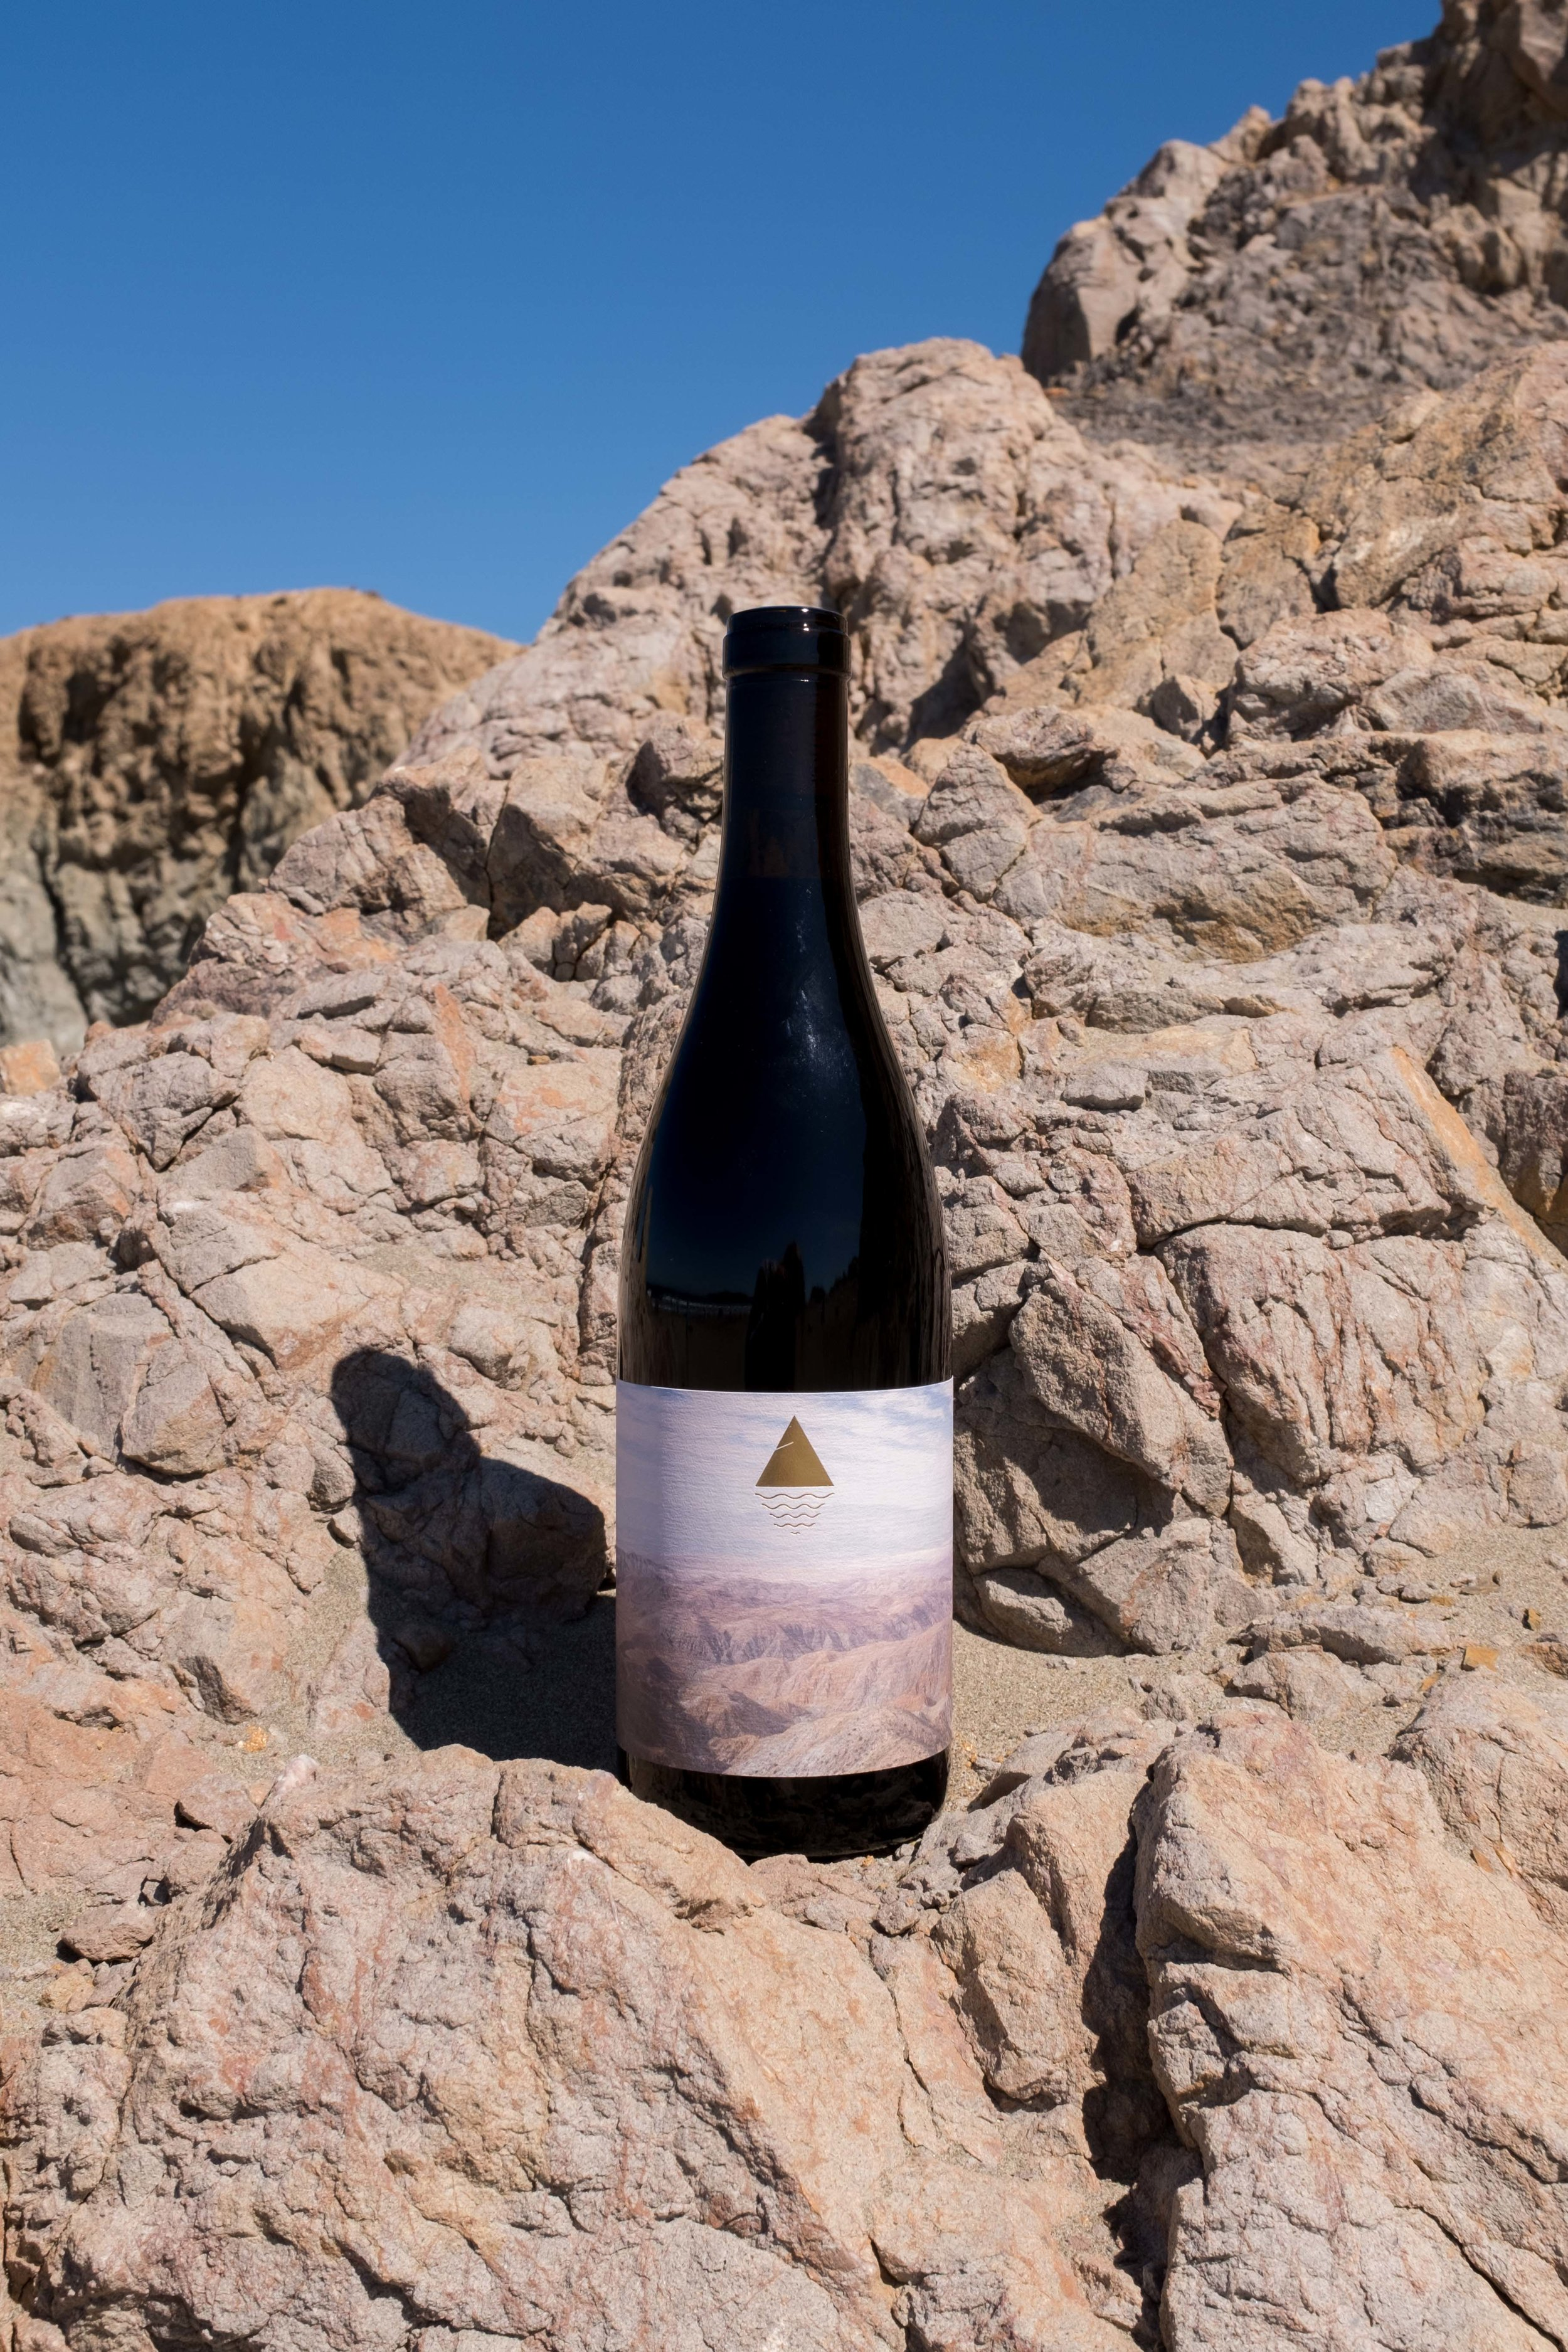 mountain-tides-wine-2017_clements-hils-bottle-petite-sirah.jpg